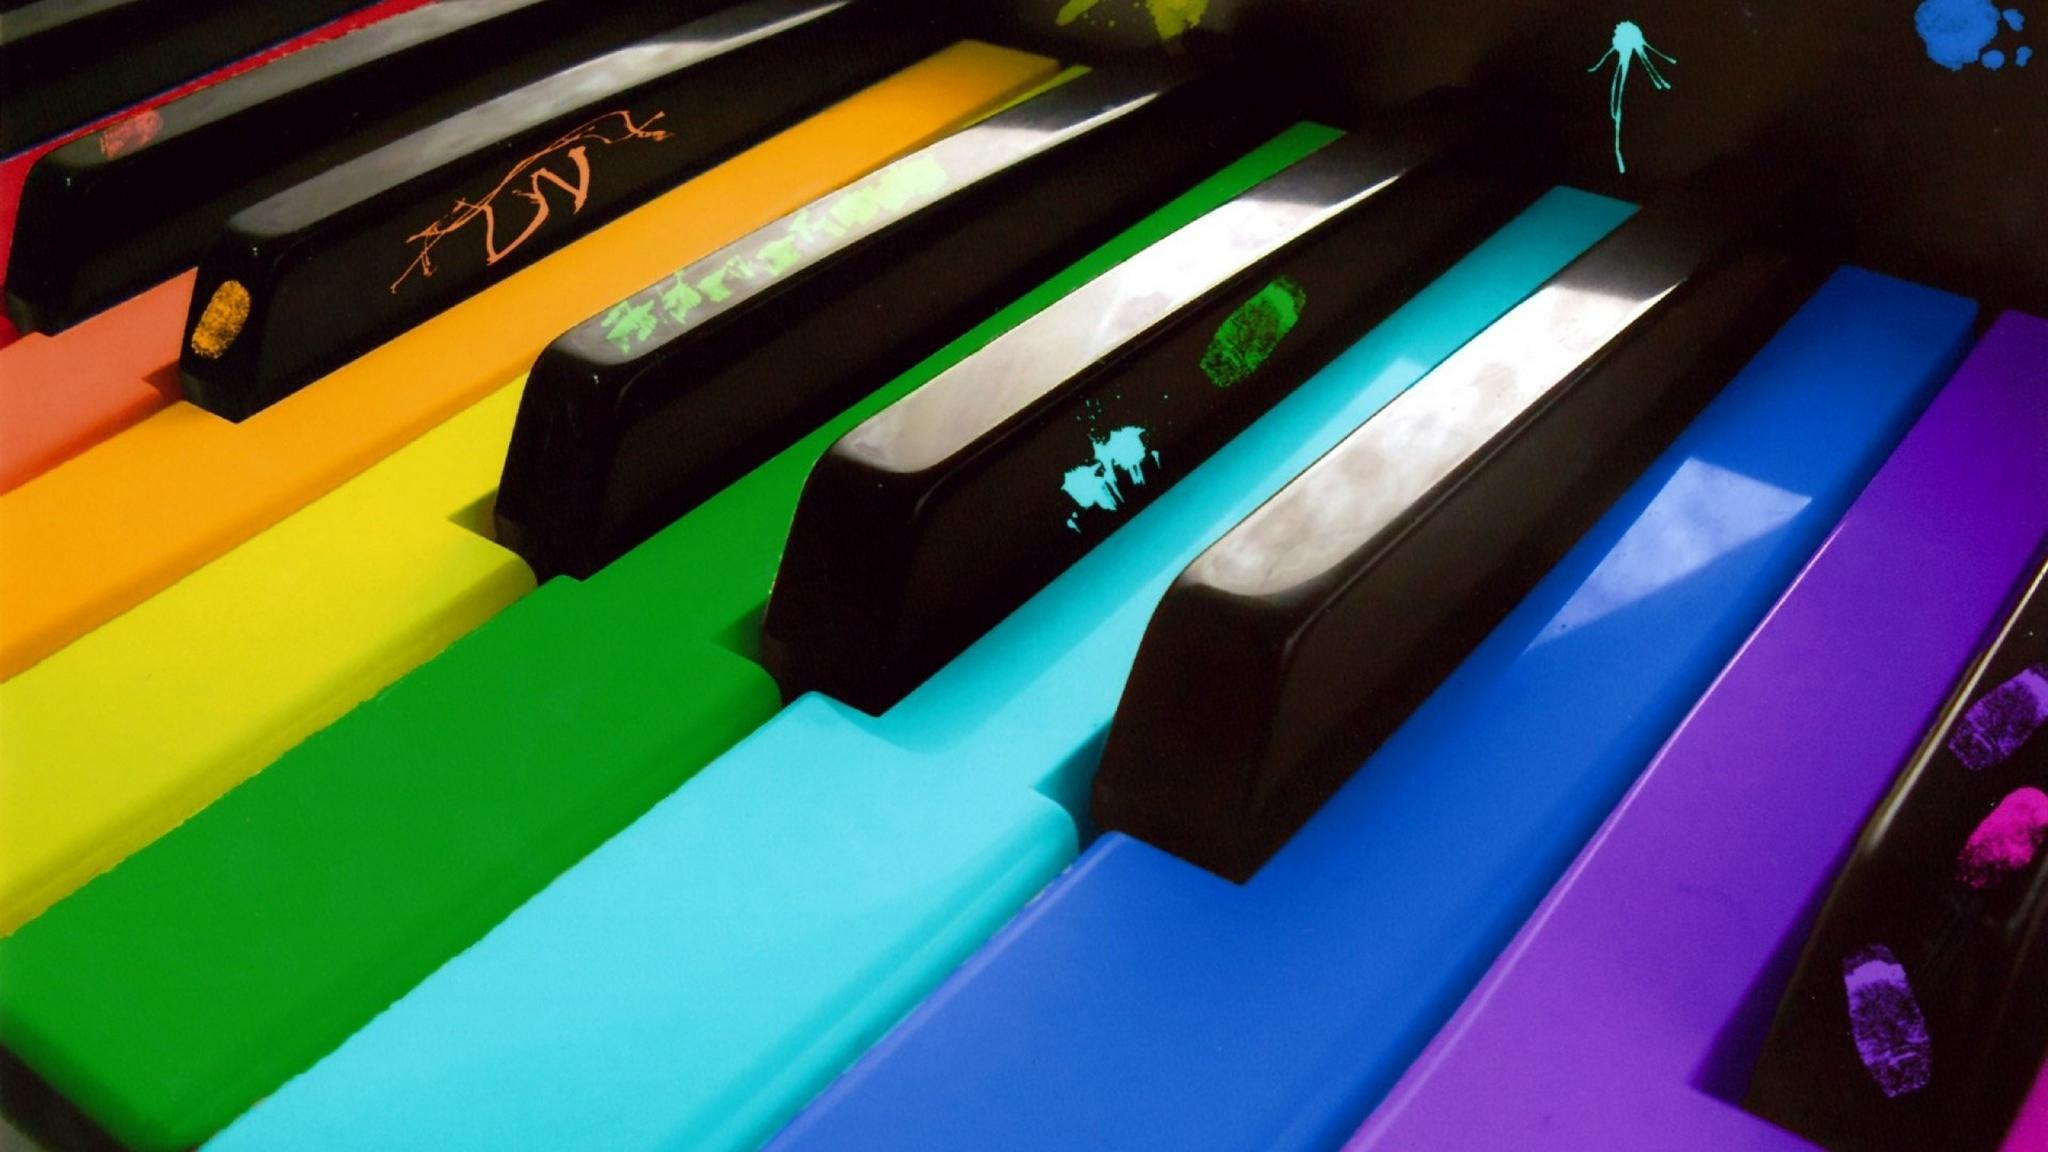 Download wallpaper 2048x1152 piano, colored, keys ultrawide monitor ...